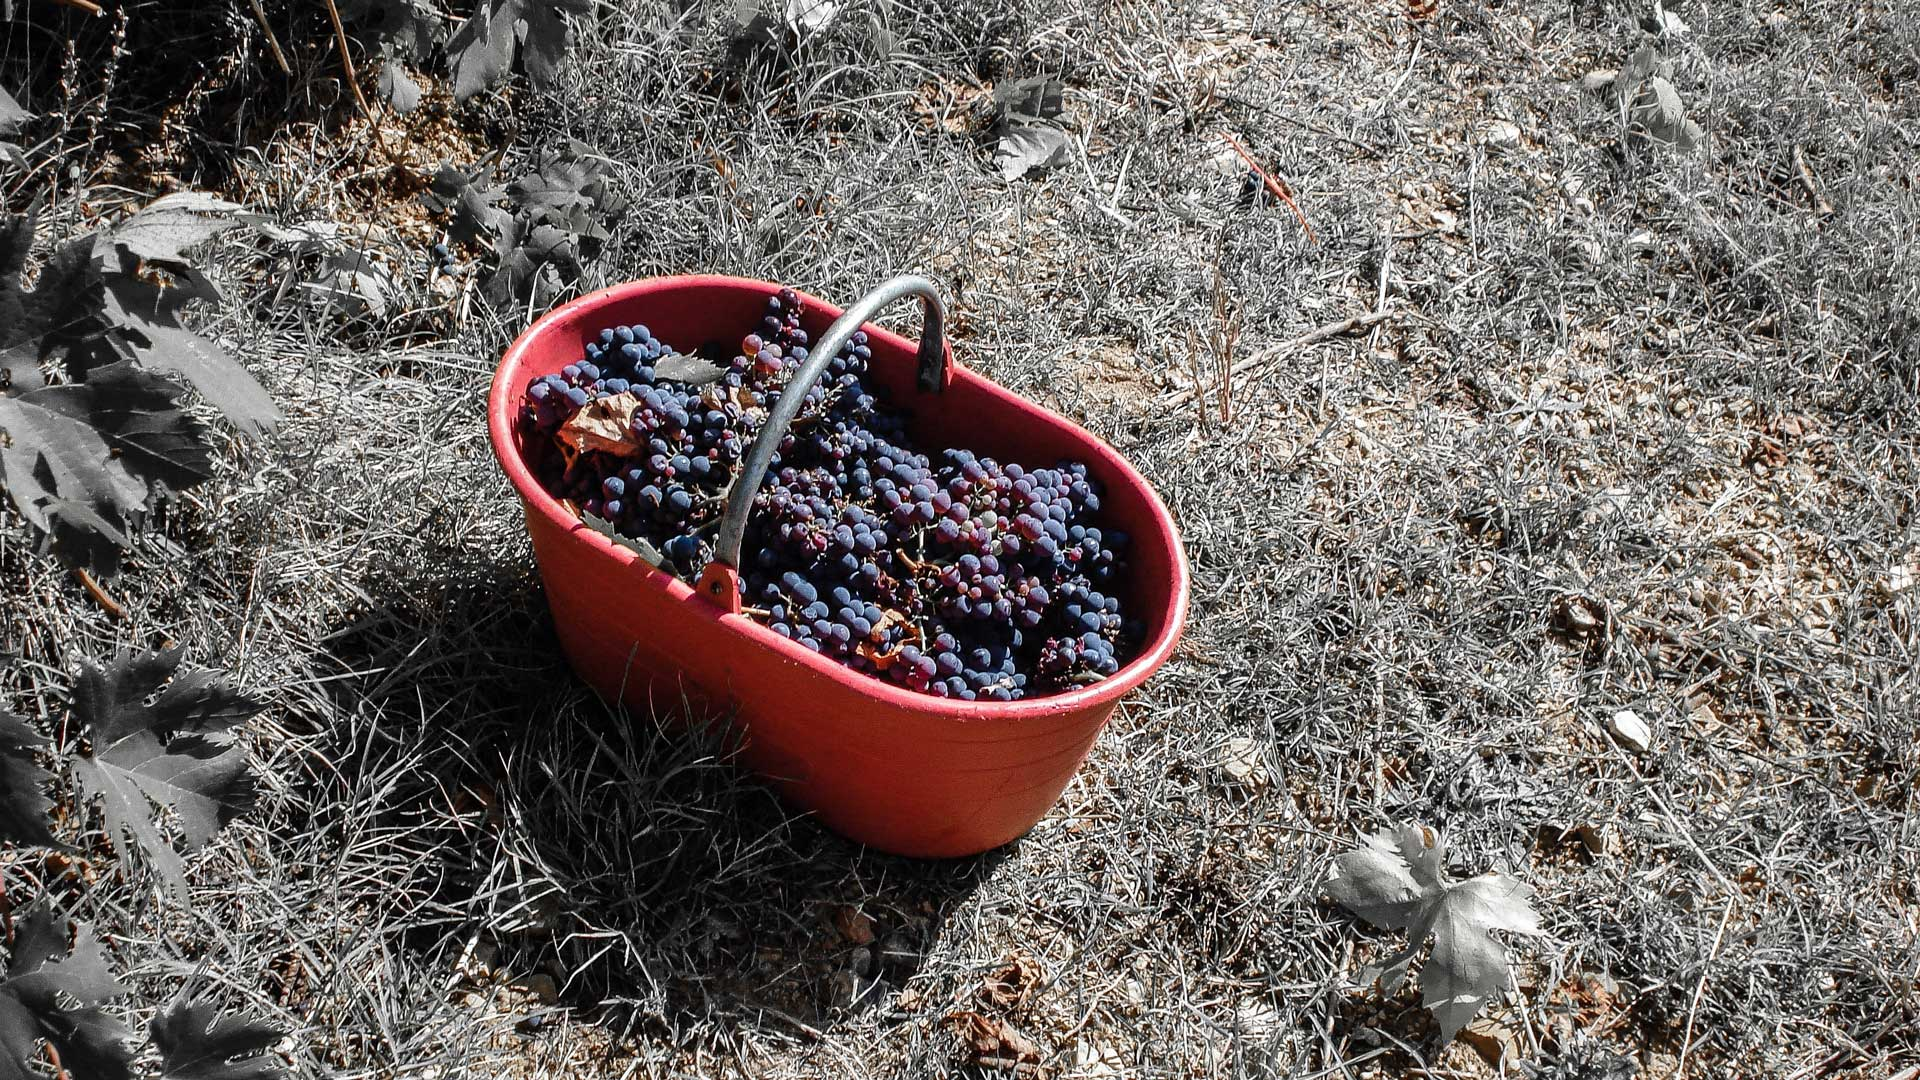 Copy of Harvested grapes